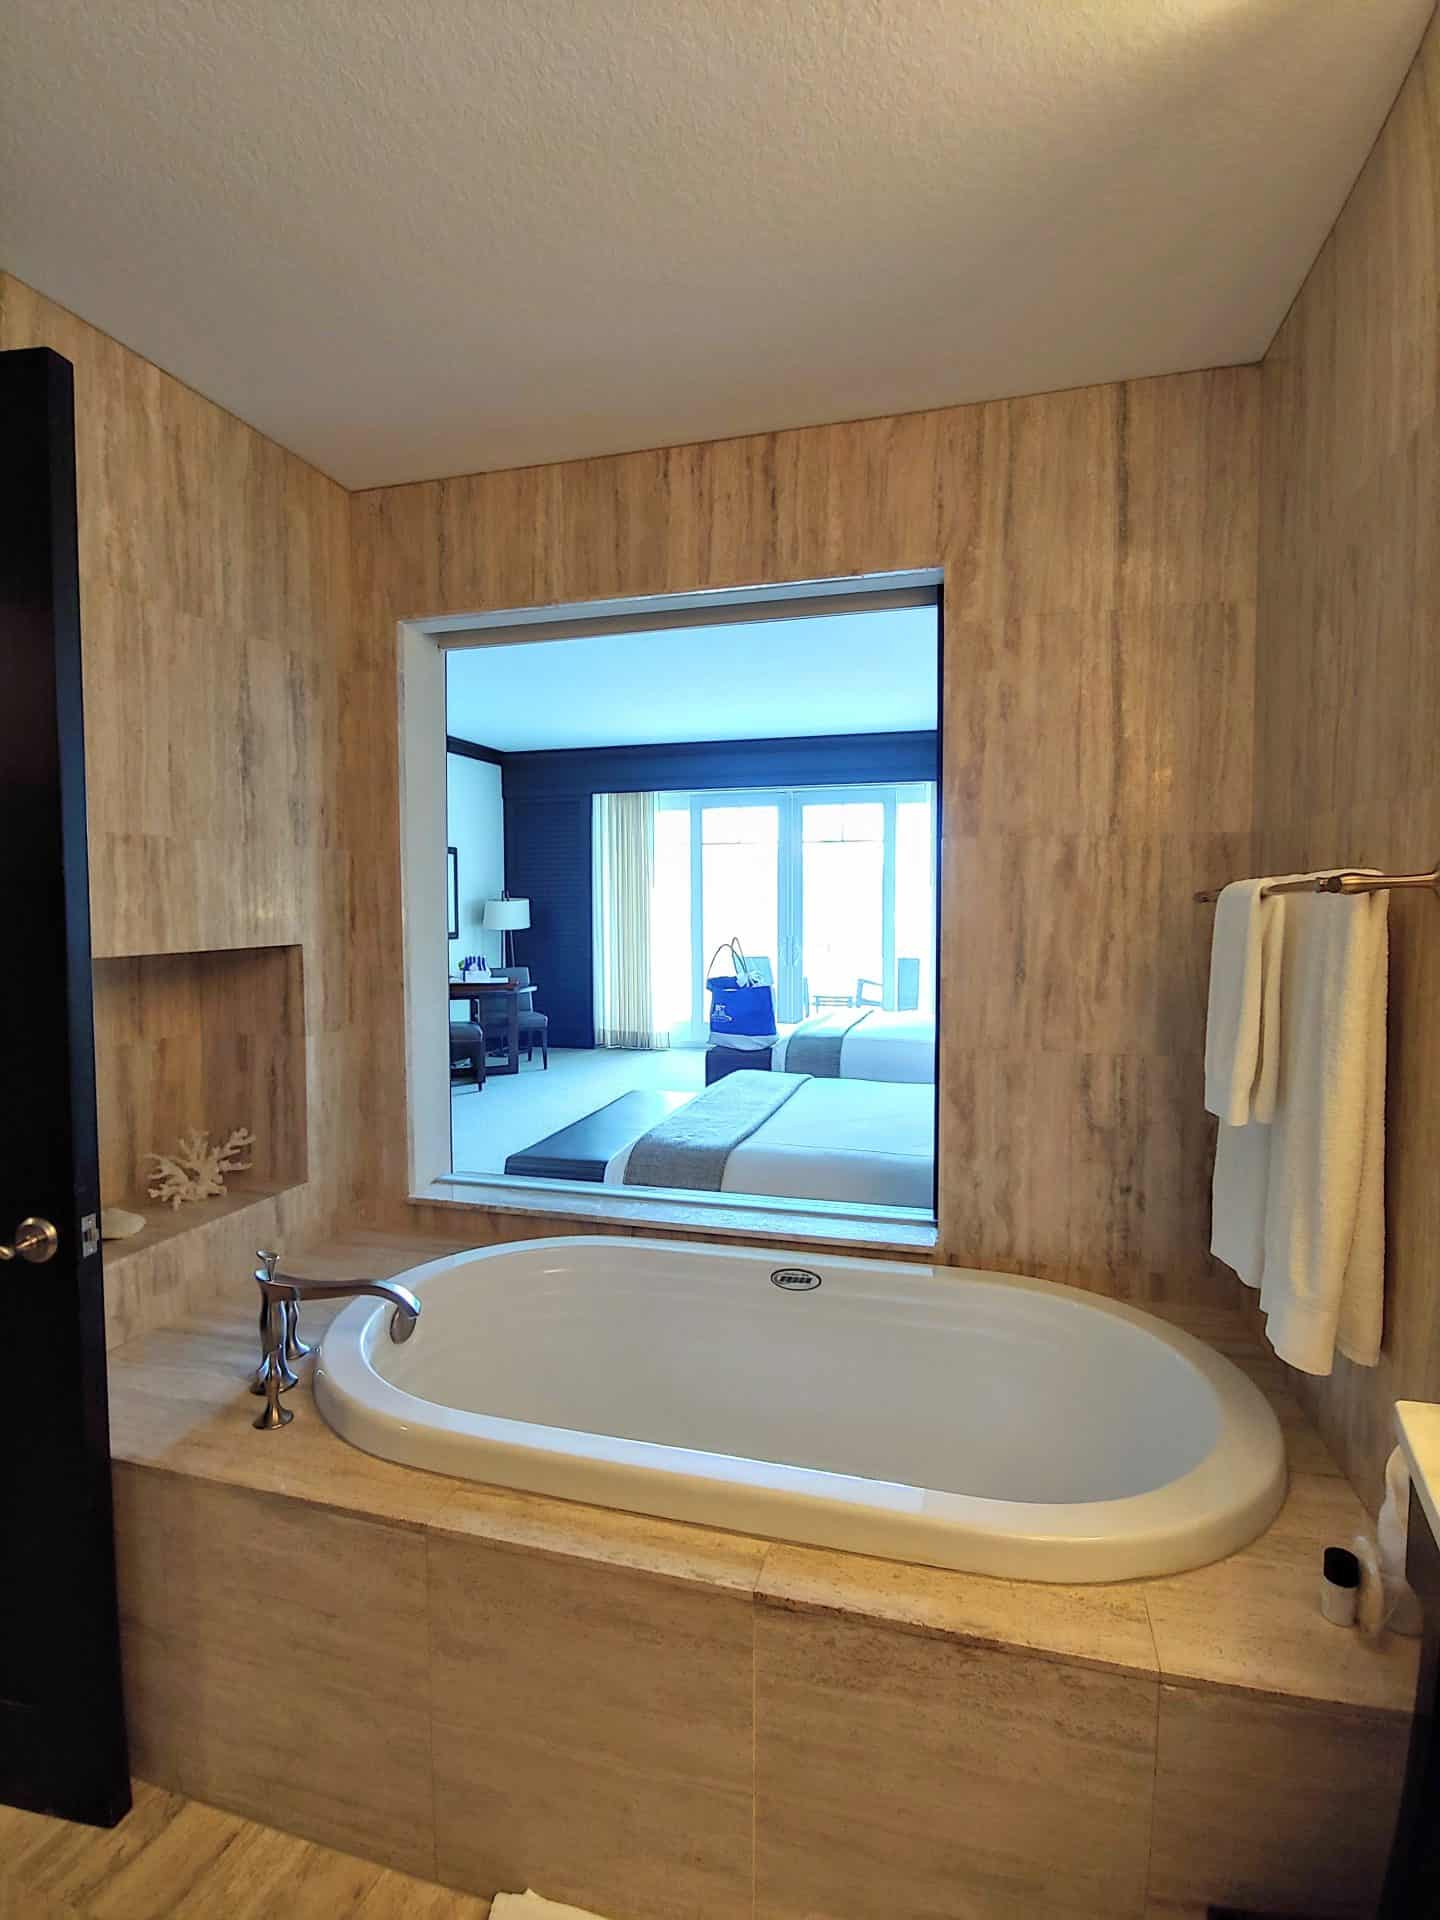 soaker tub overlooking bedroom